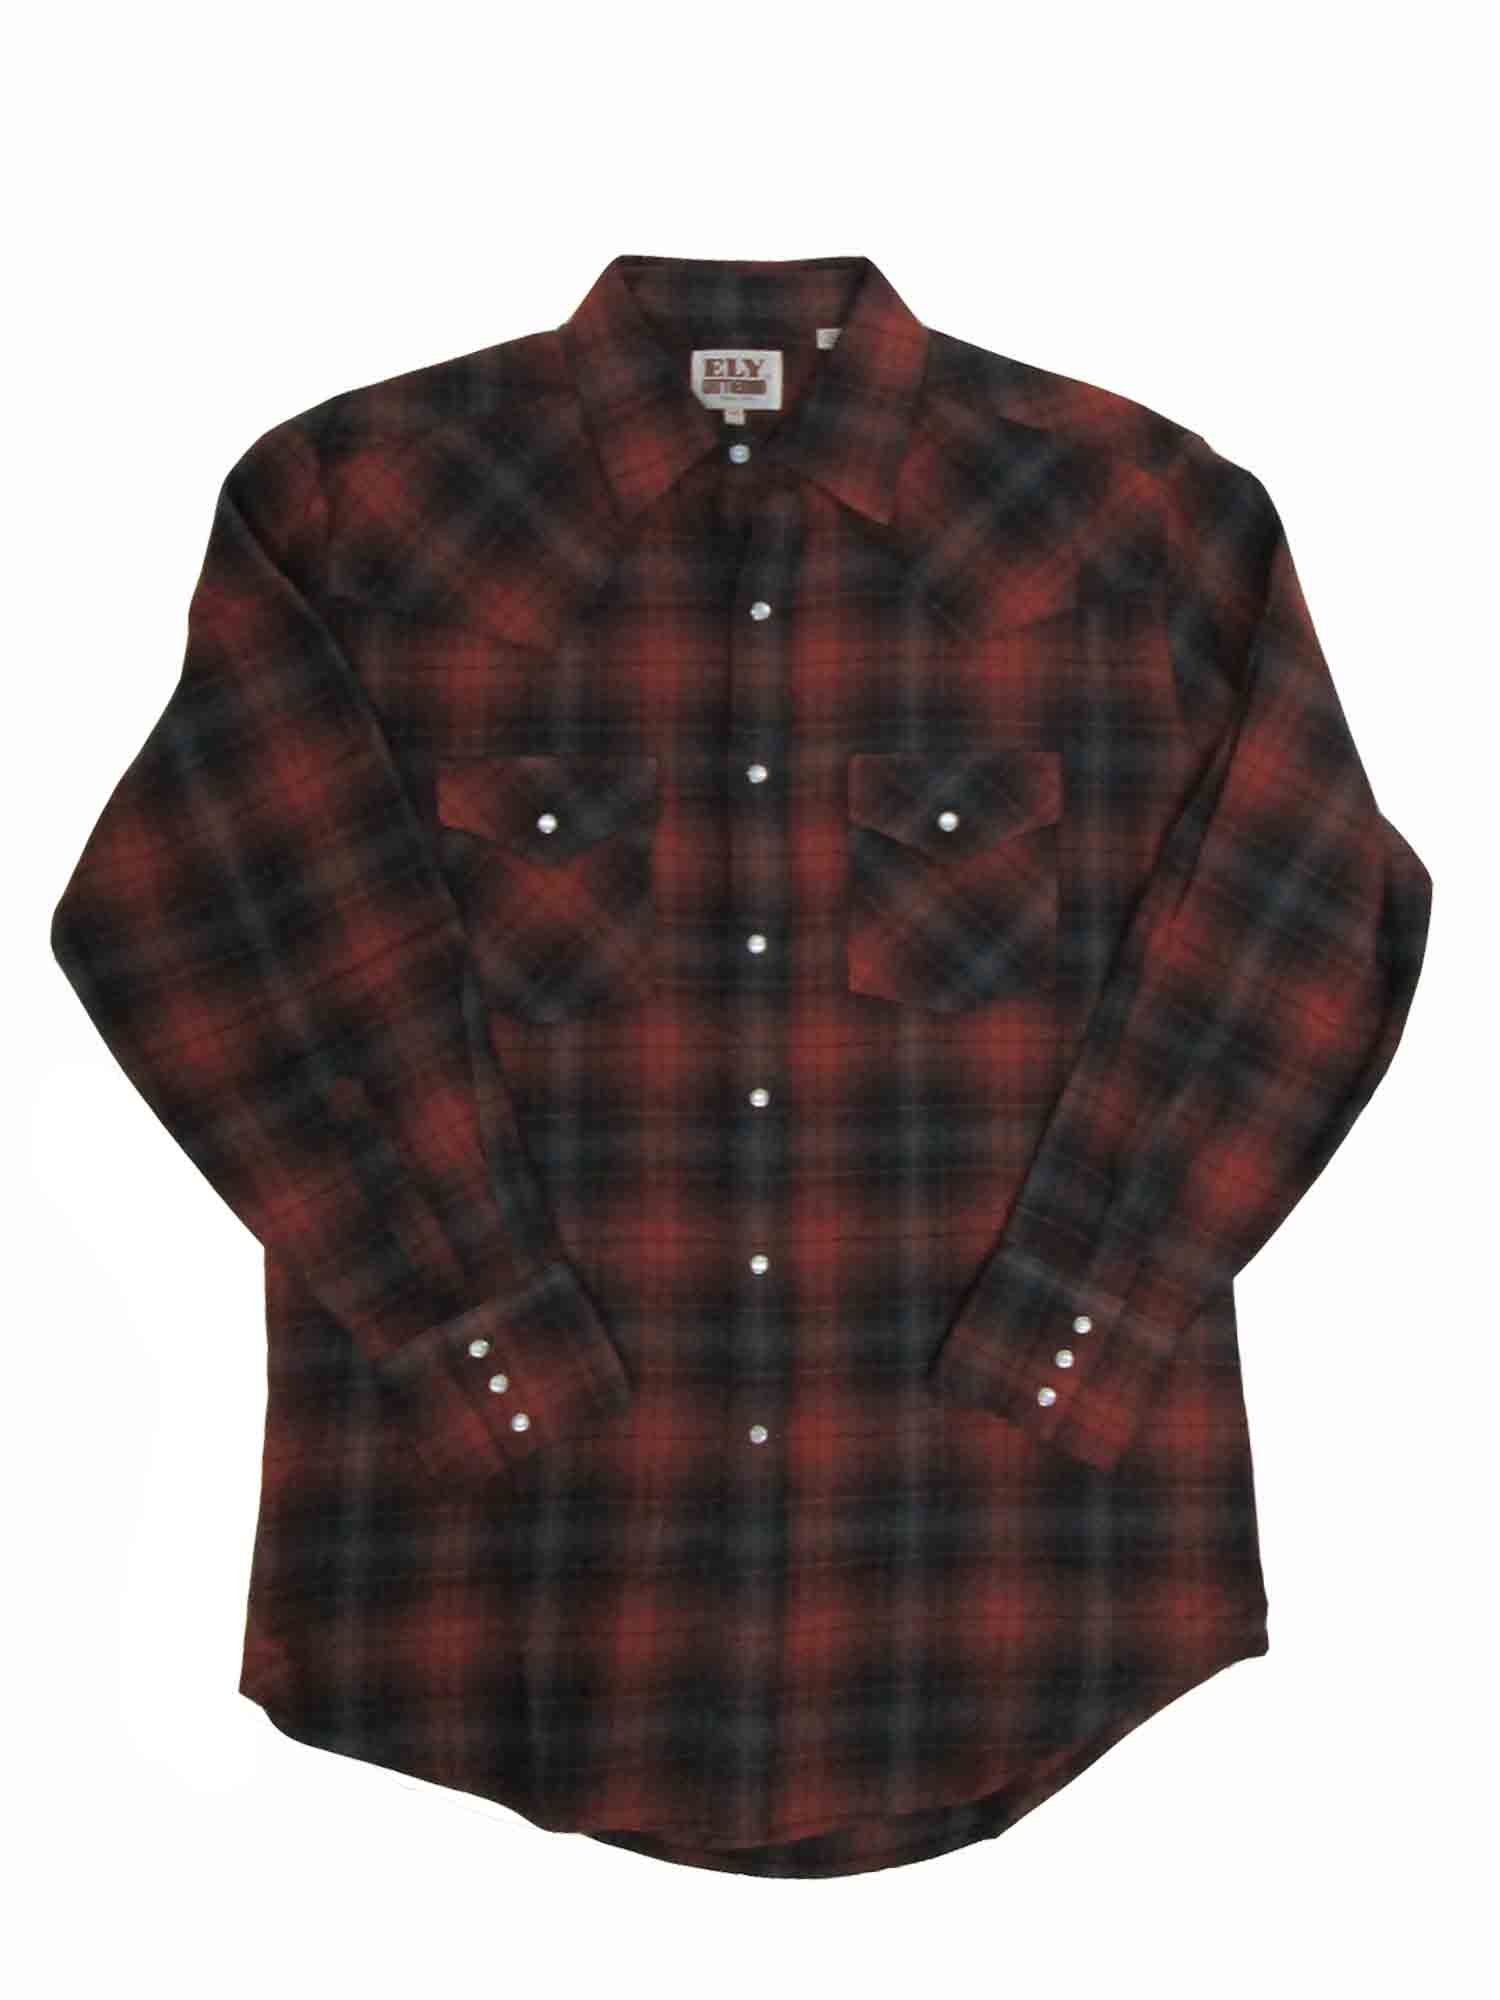 Ely Cattleman Mens Western Brawny Heavy Duty Flannel Plaid 4-Shirt Bundle Pack by ELY CATTLEMAN